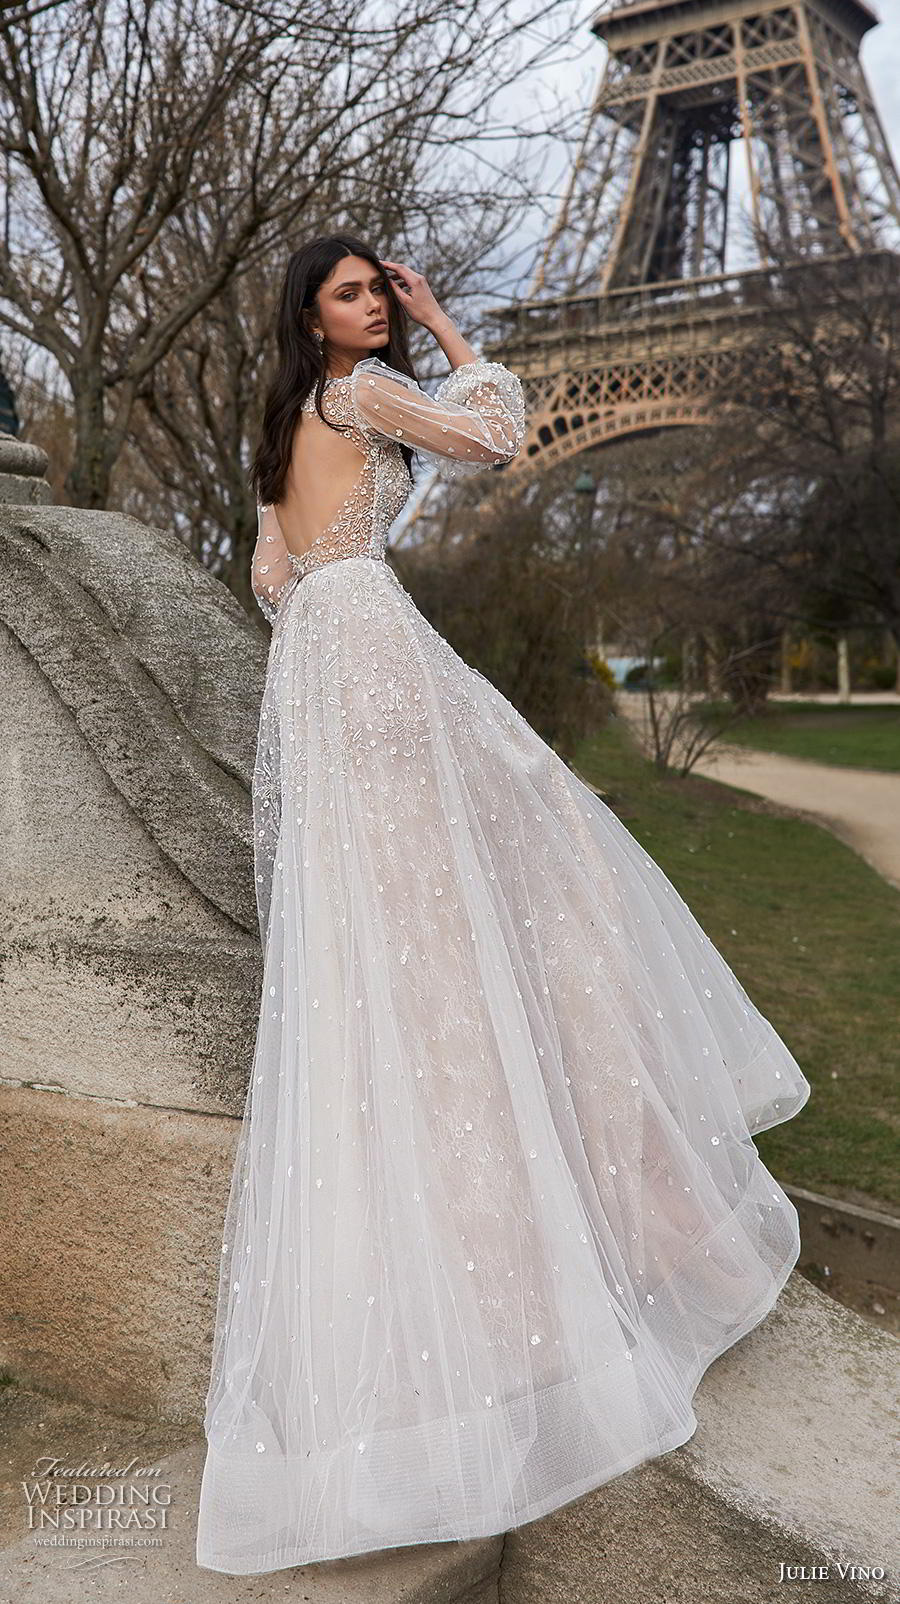 julie vino 2019 paris bridal long bishop sleeves deep v neck heavily embellished bodice romantic a  line wedding dress keyhole back chapel train (5) bv